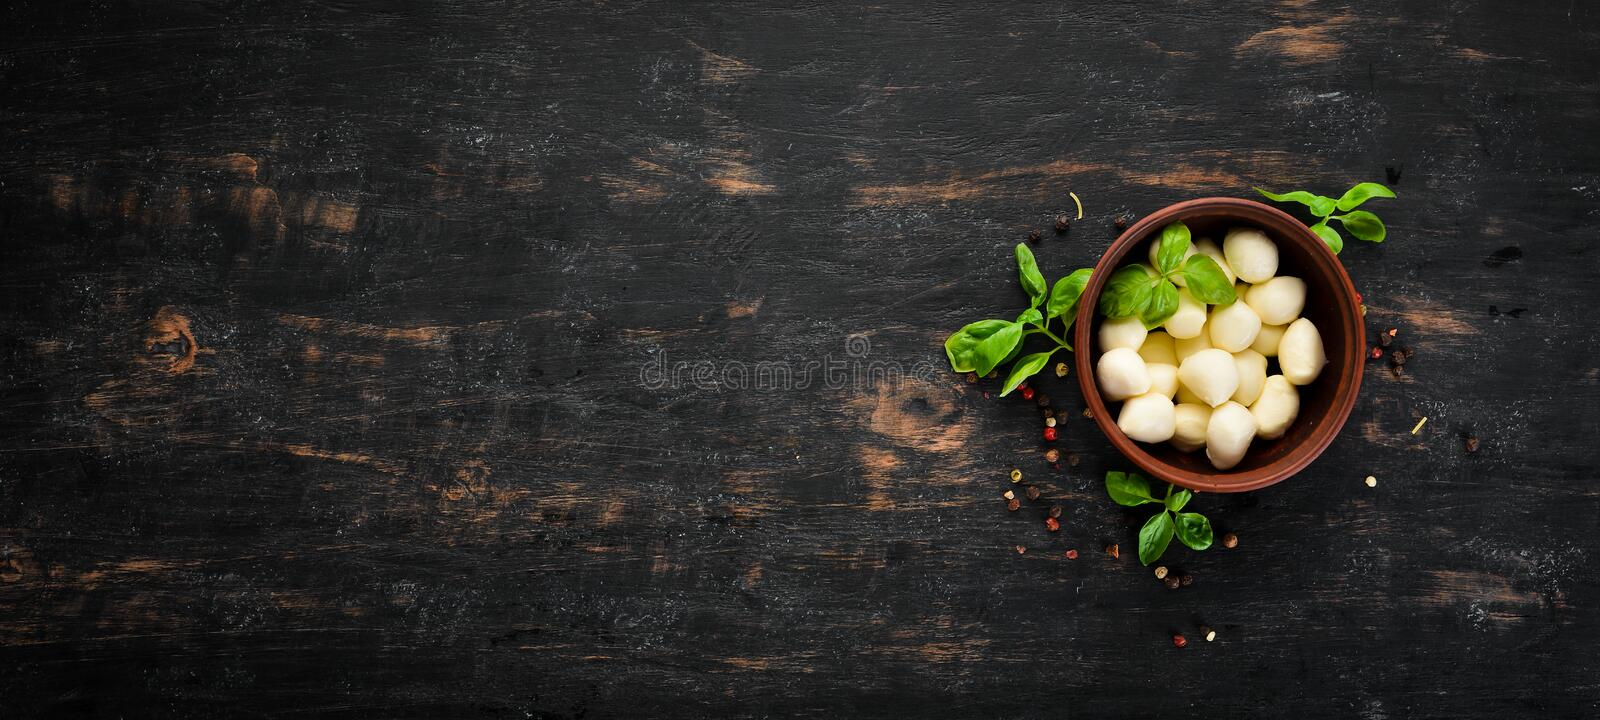 Mozzarella cheese in a clay plate. Top view. On a wooden background. Free copy space stock images